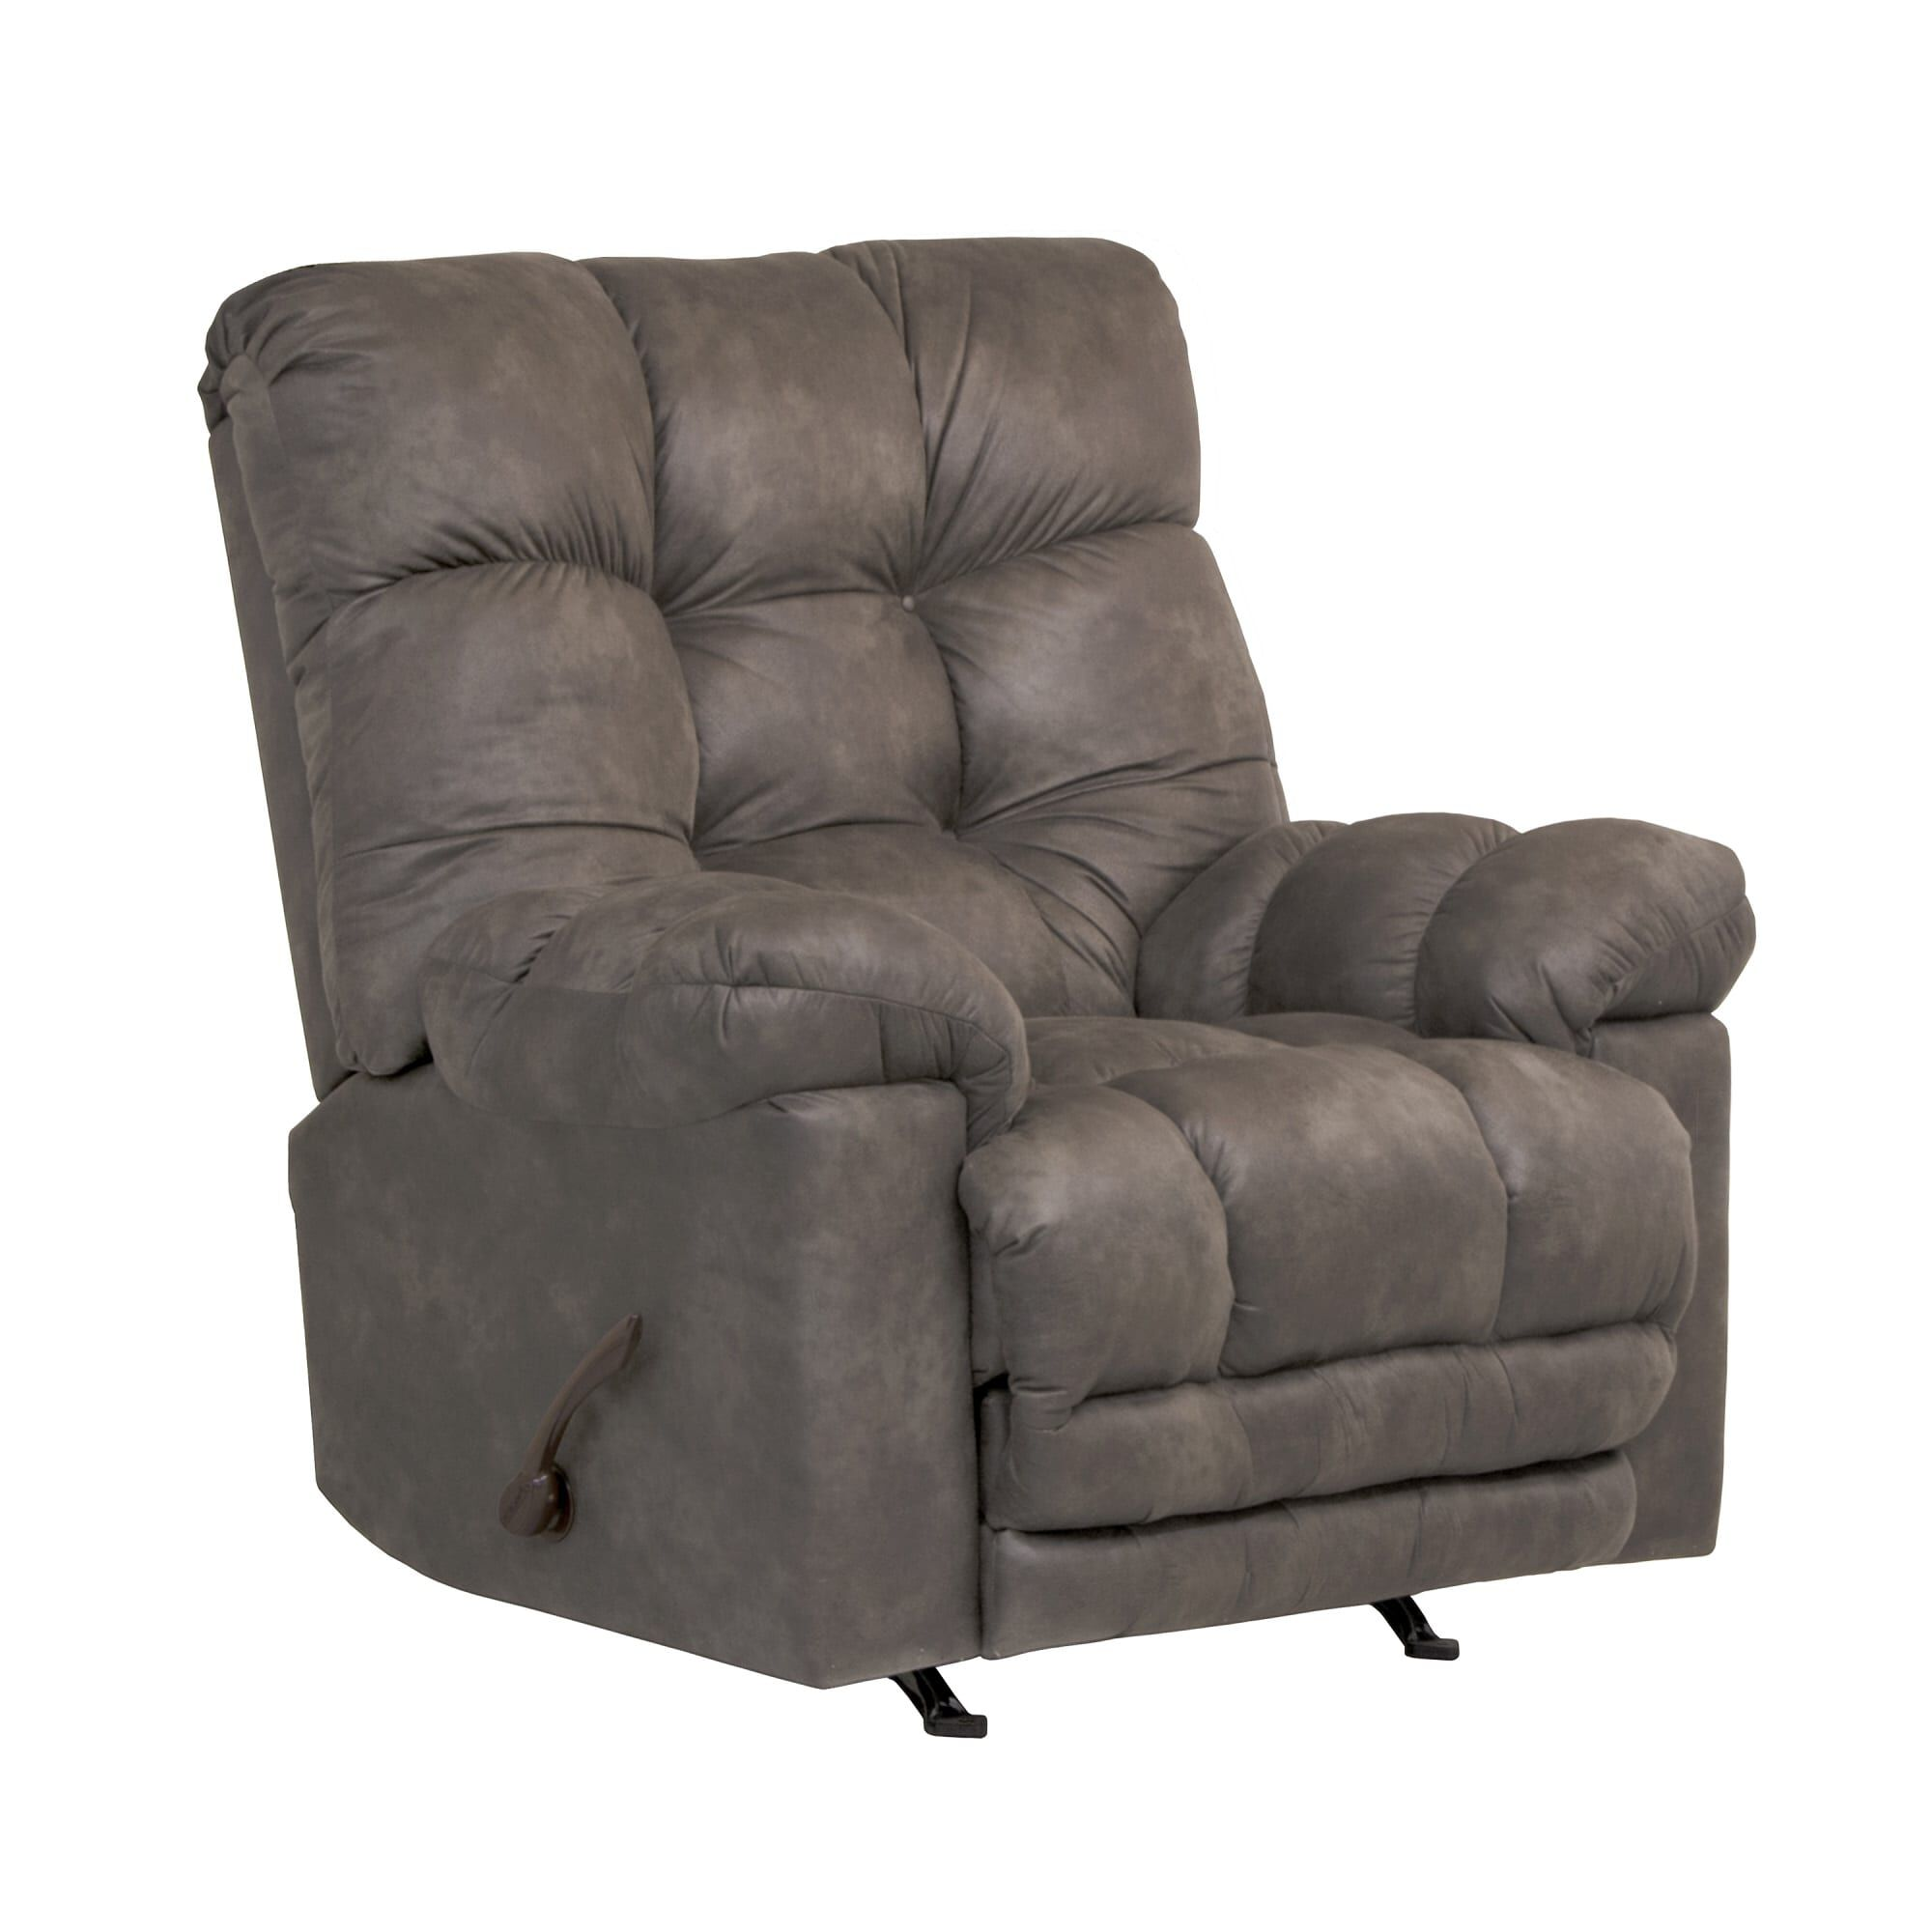 Jackson Furniture Recliners  Chairs Heat and Massage